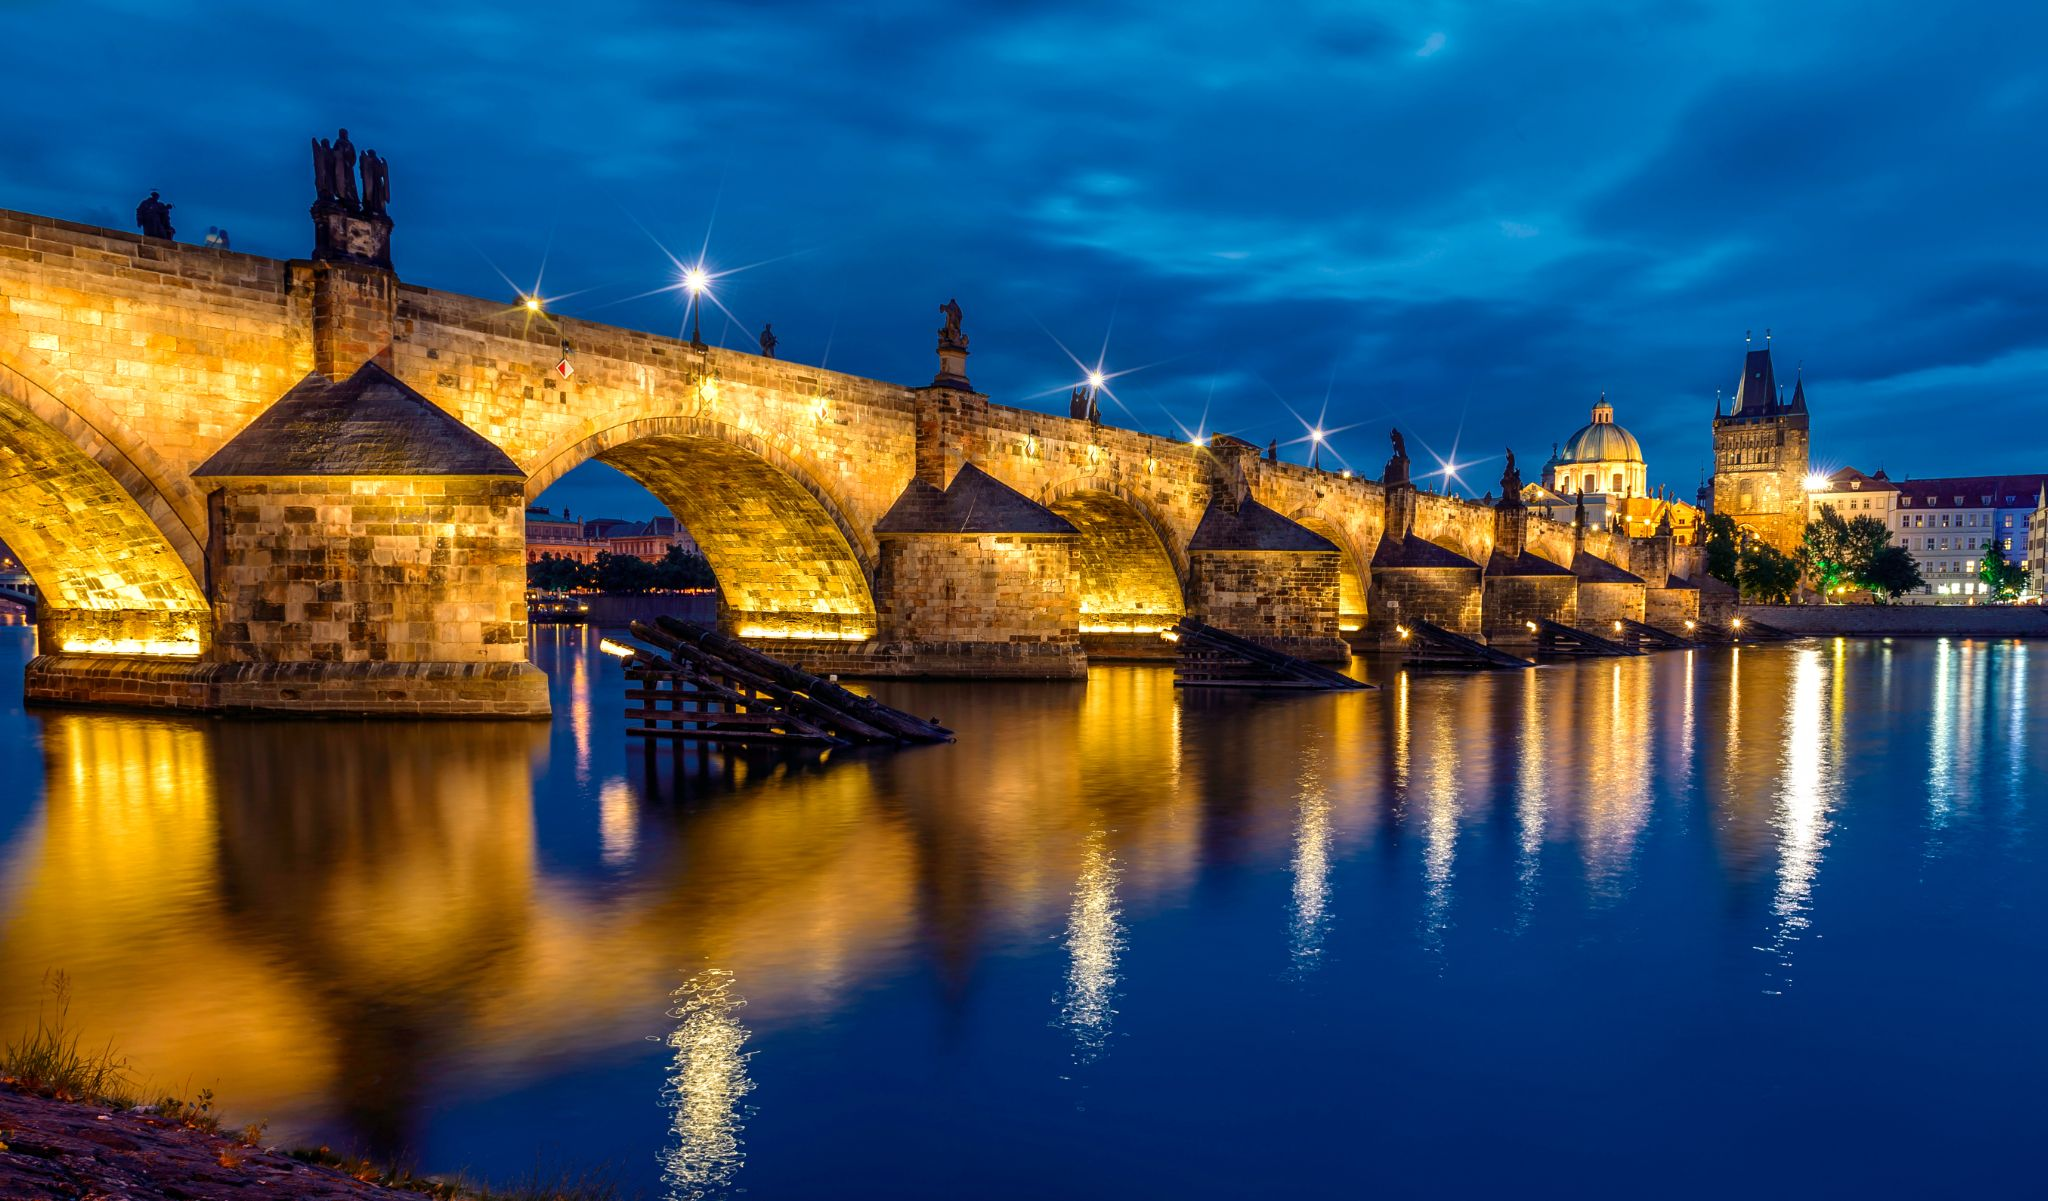 Charles Bridge, Prague by Nick M